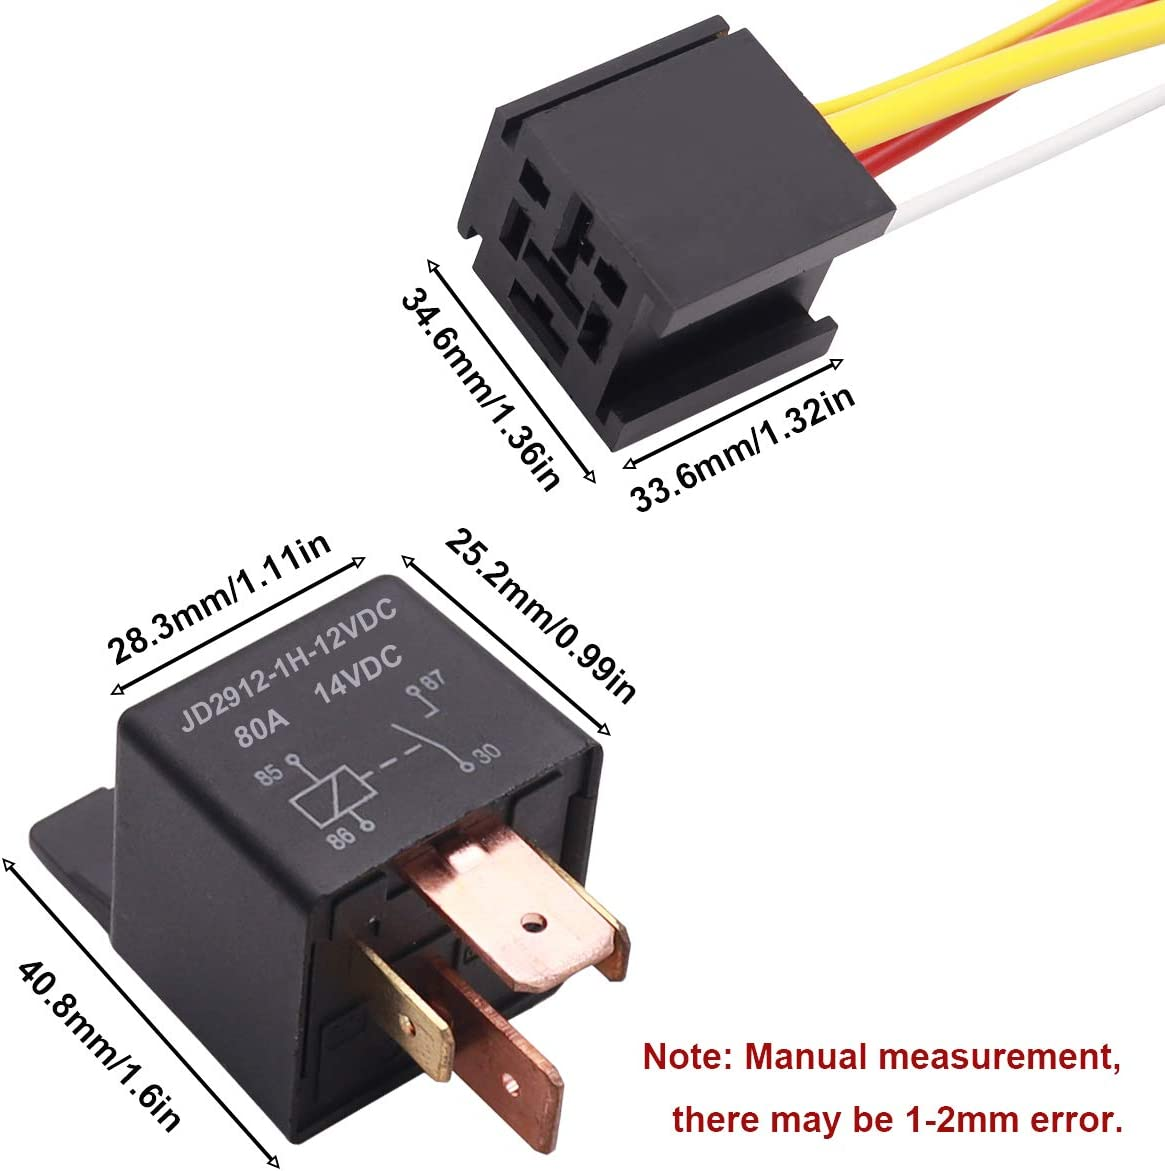 smseace 2PCS DC 12V 40A 4Pin SPST Electrical Relay Used for Automotive Truck Motor JD2912-1H-12VDC 40A 14VDC Normally Open Relays JDC-4p-12v-40A-2PCS